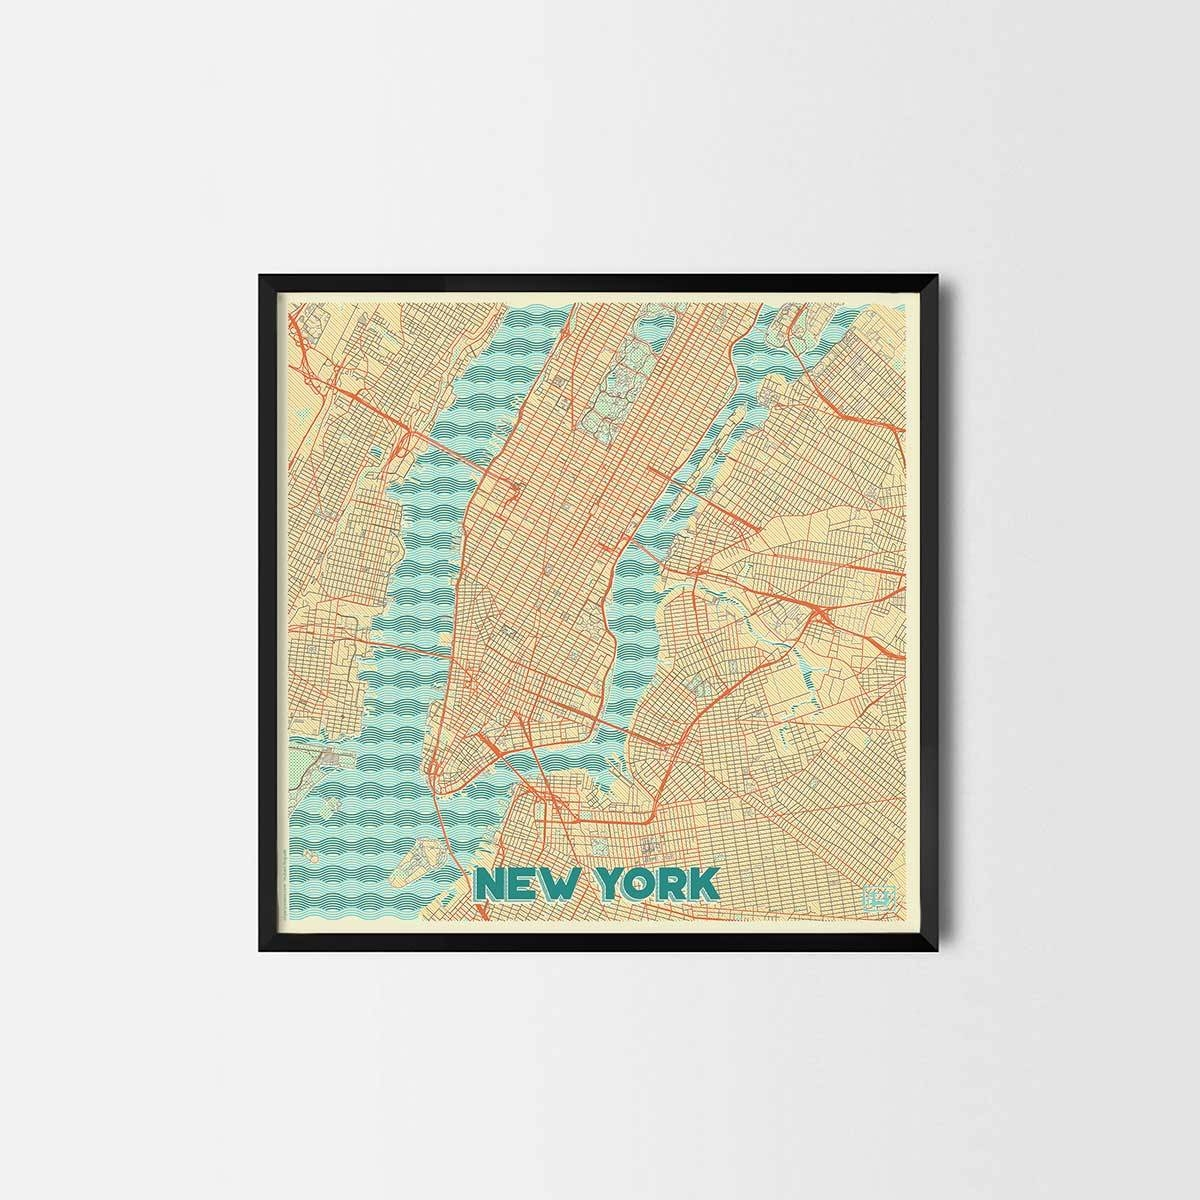 City Art Posters | Map Posters And Art Prints – Gifts For City Inside Newest New York City Map Wall Art (View 3 of 20)